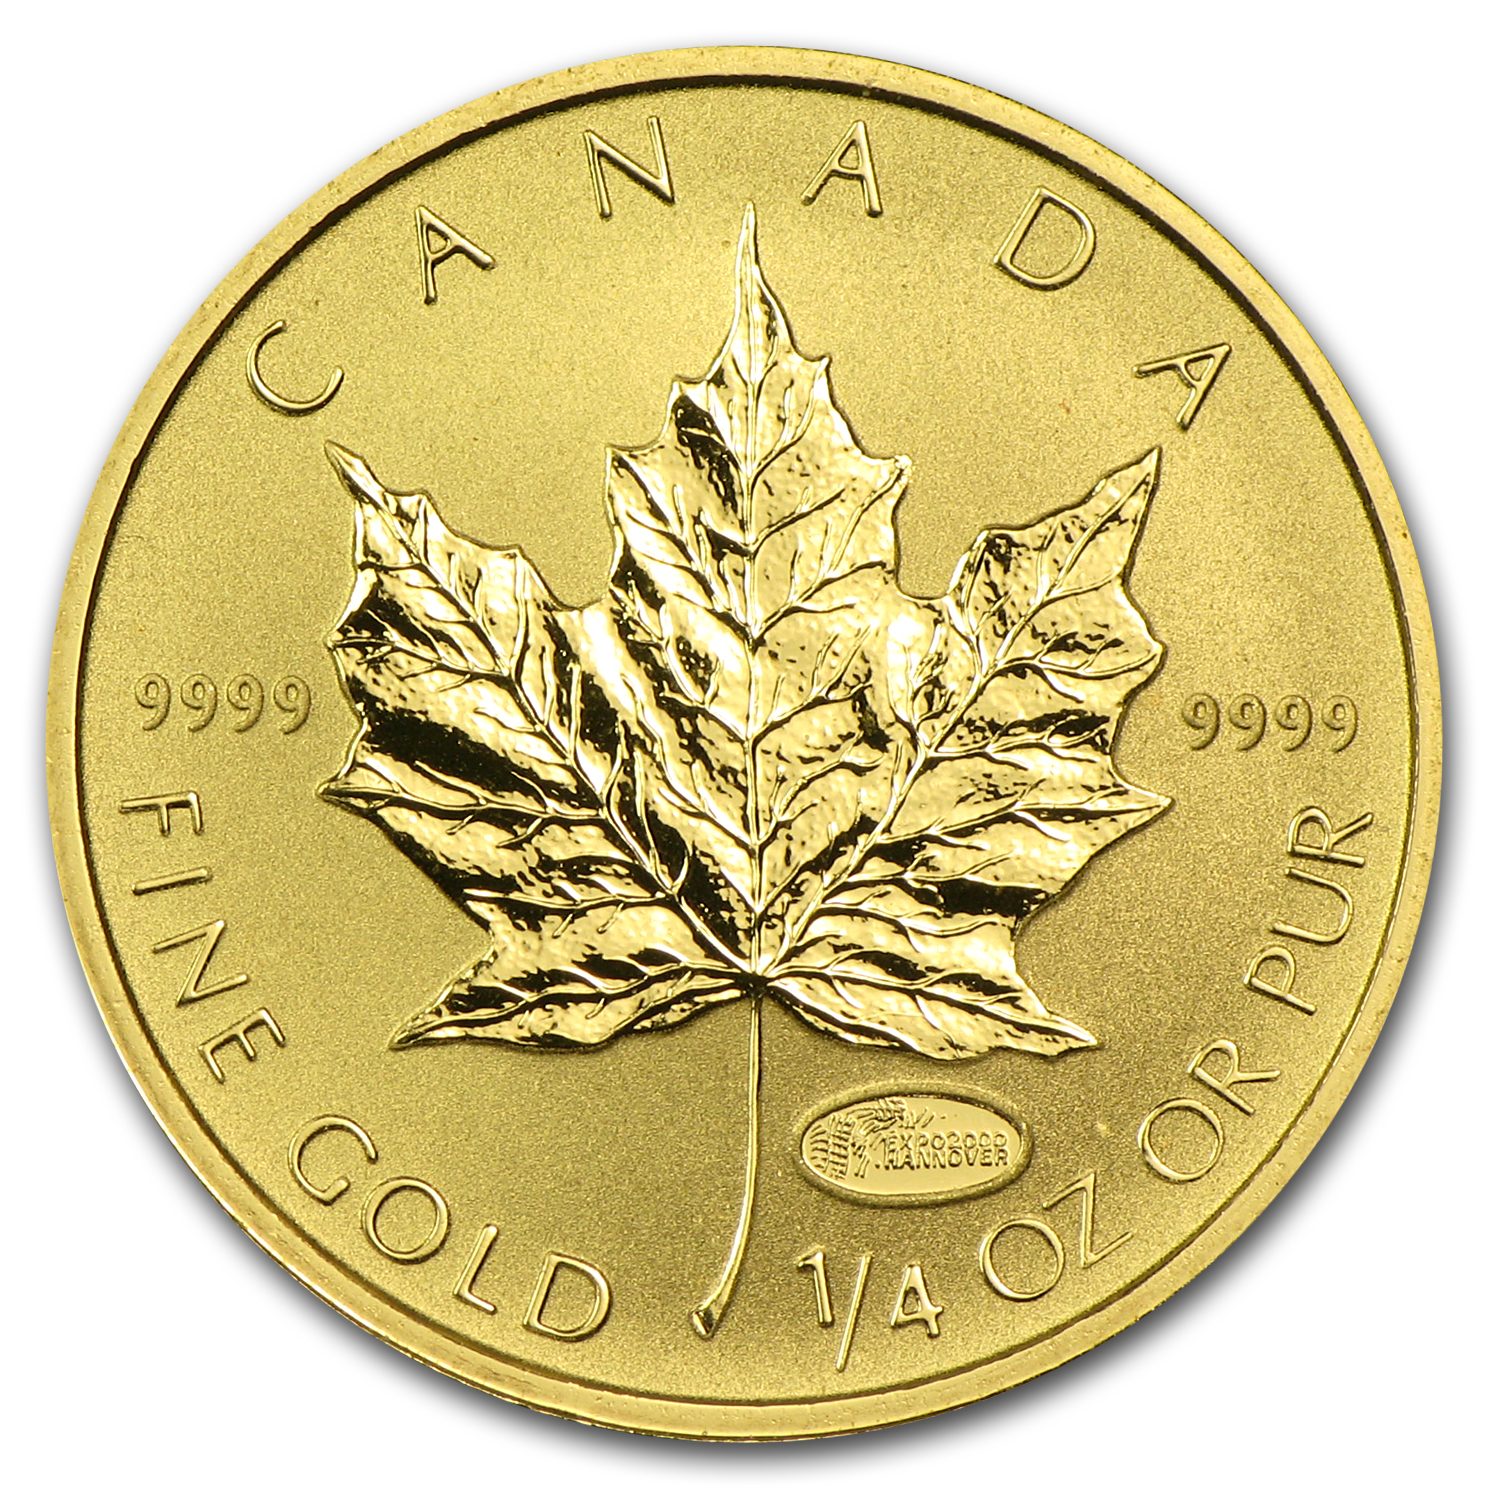 2000 Canada 1/4 oz Gold Maple Leaf BU (Expo Hannover Privy)